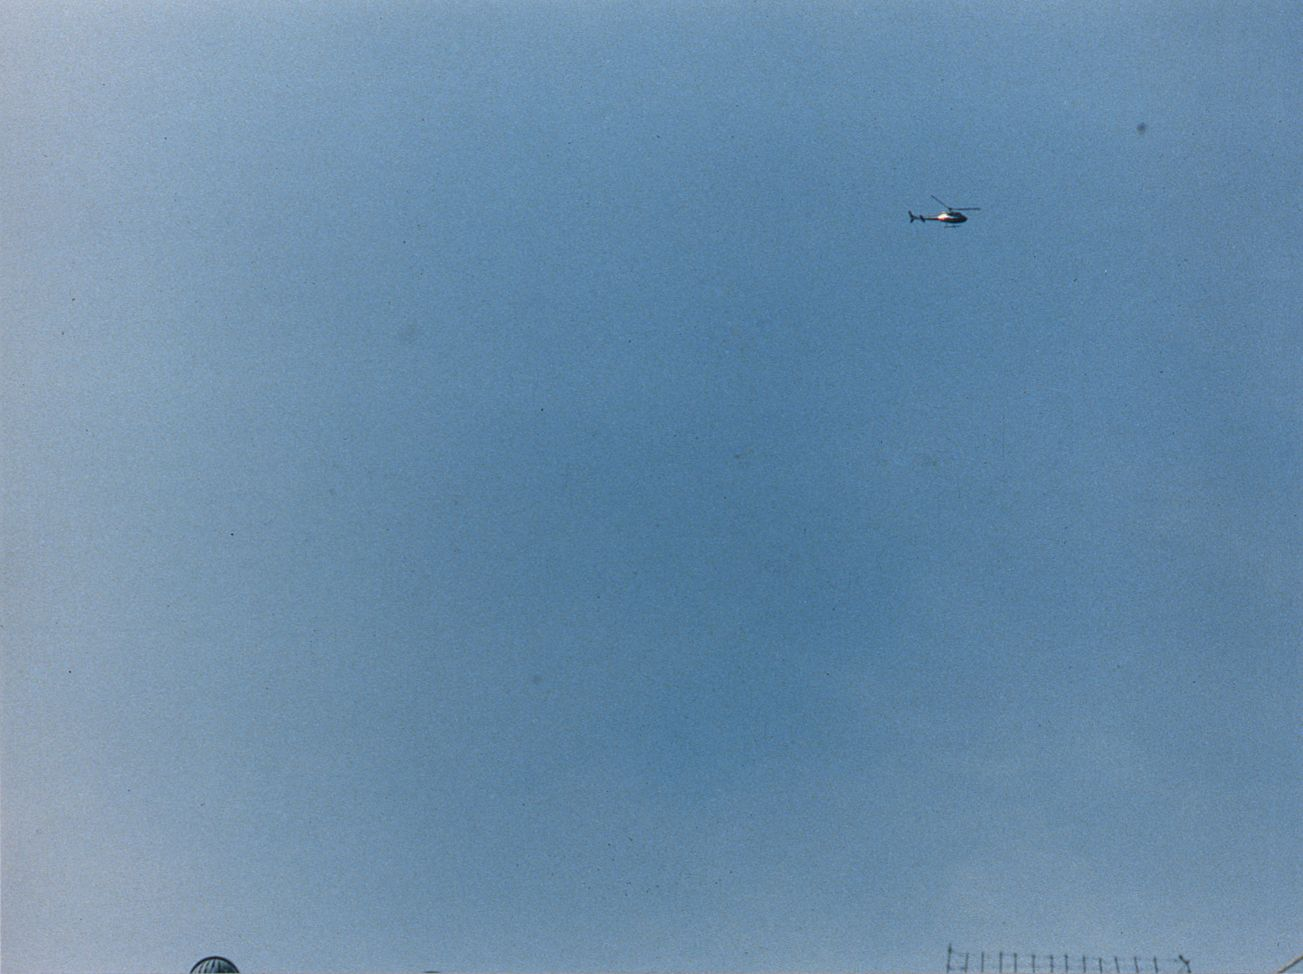 Josephine Meckseper, The Great Escape (Helicopter), 1996, c-print, 30 x 40 inches